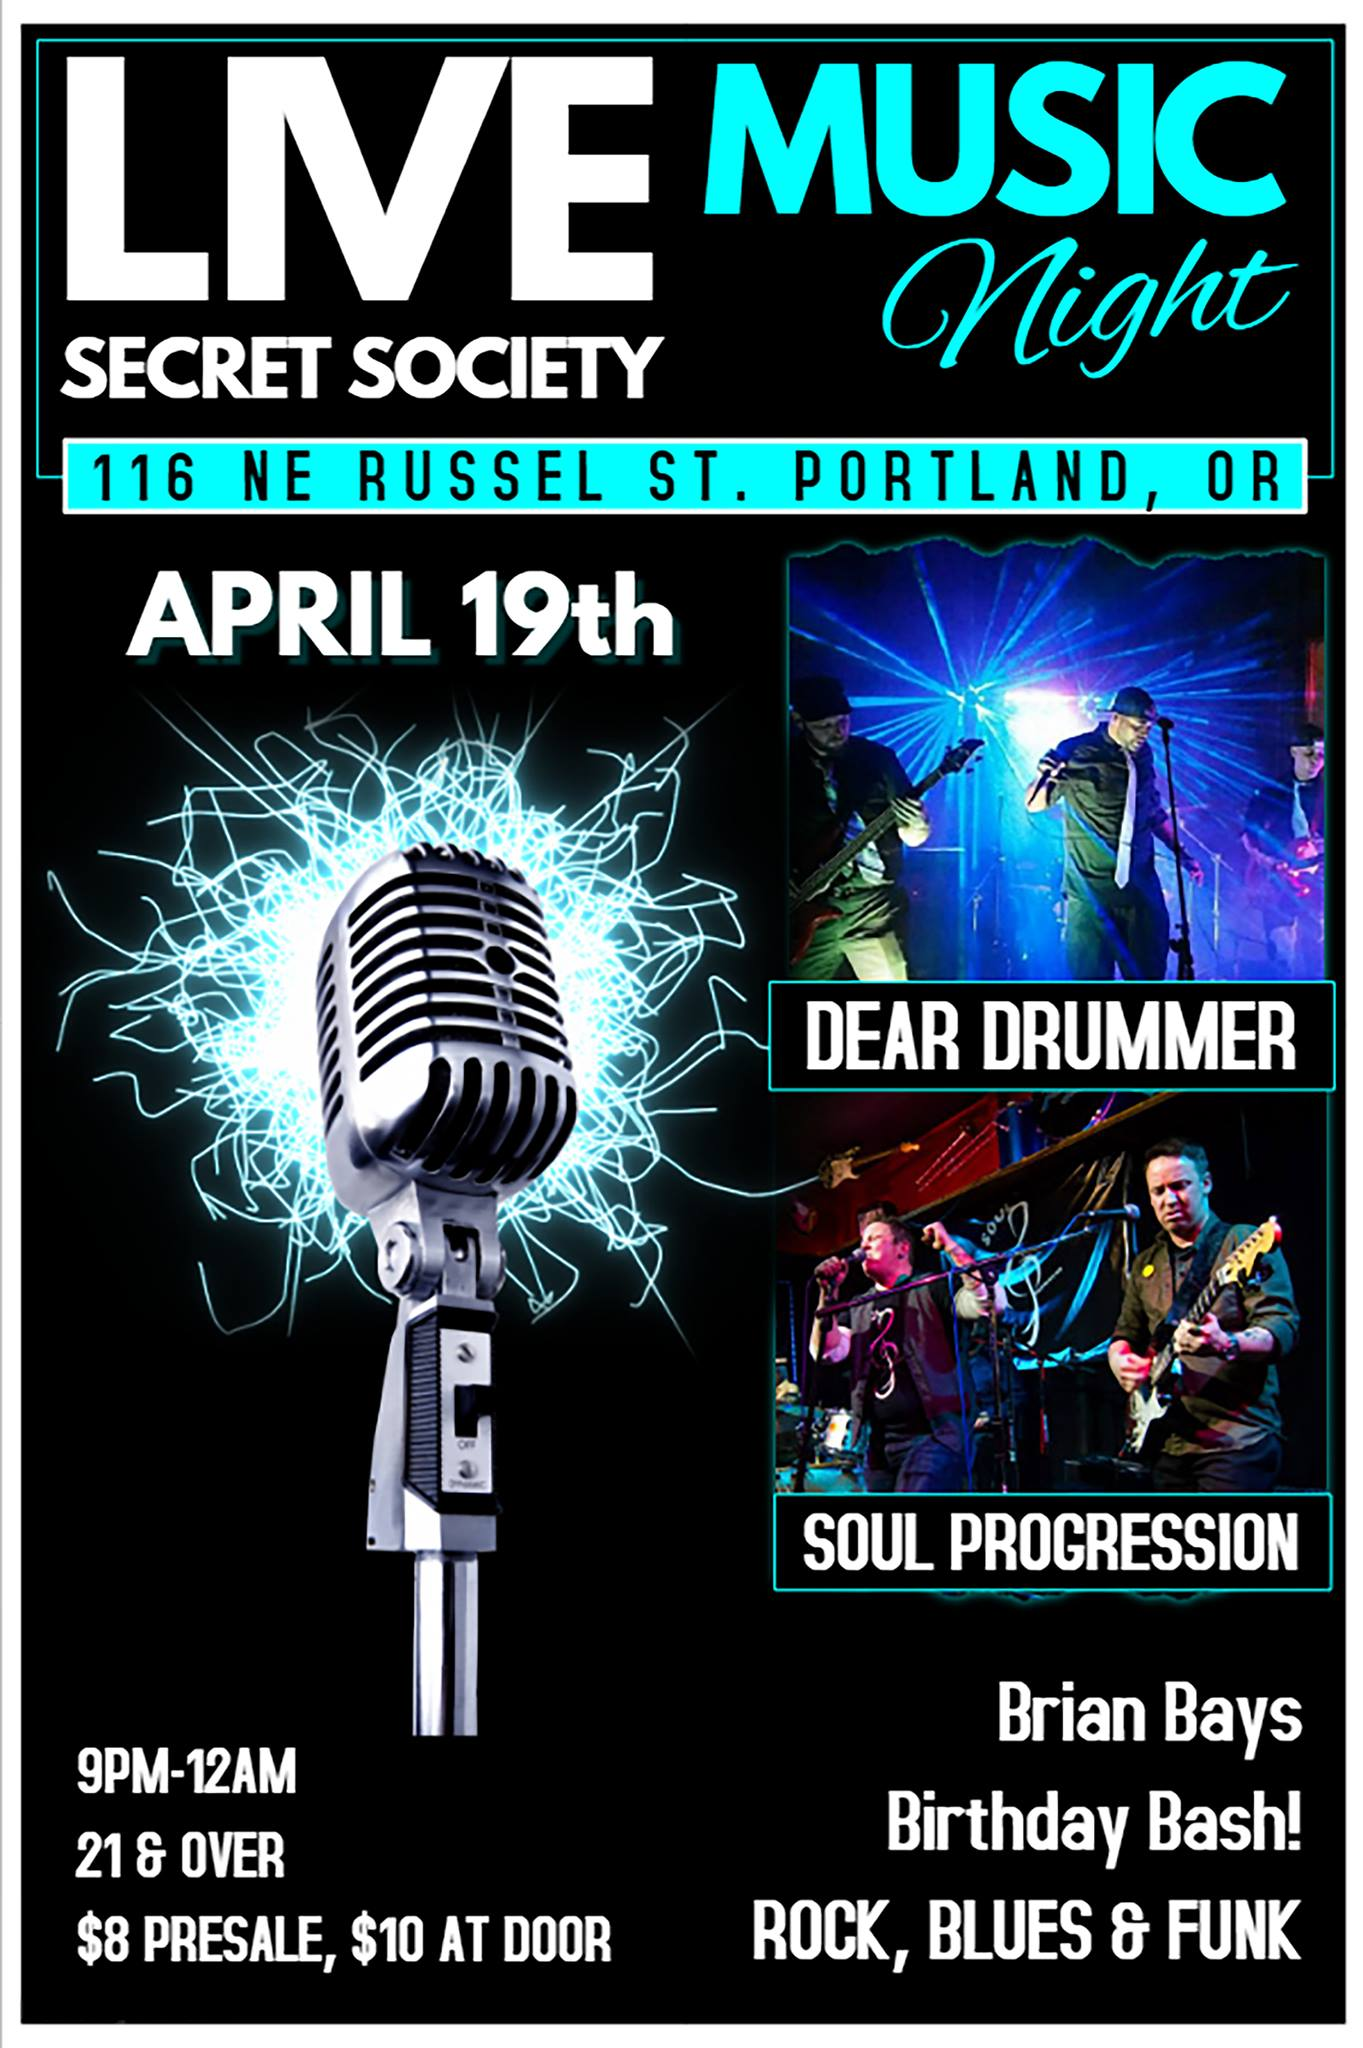 Dear Drummer Show Poster - Secret Society